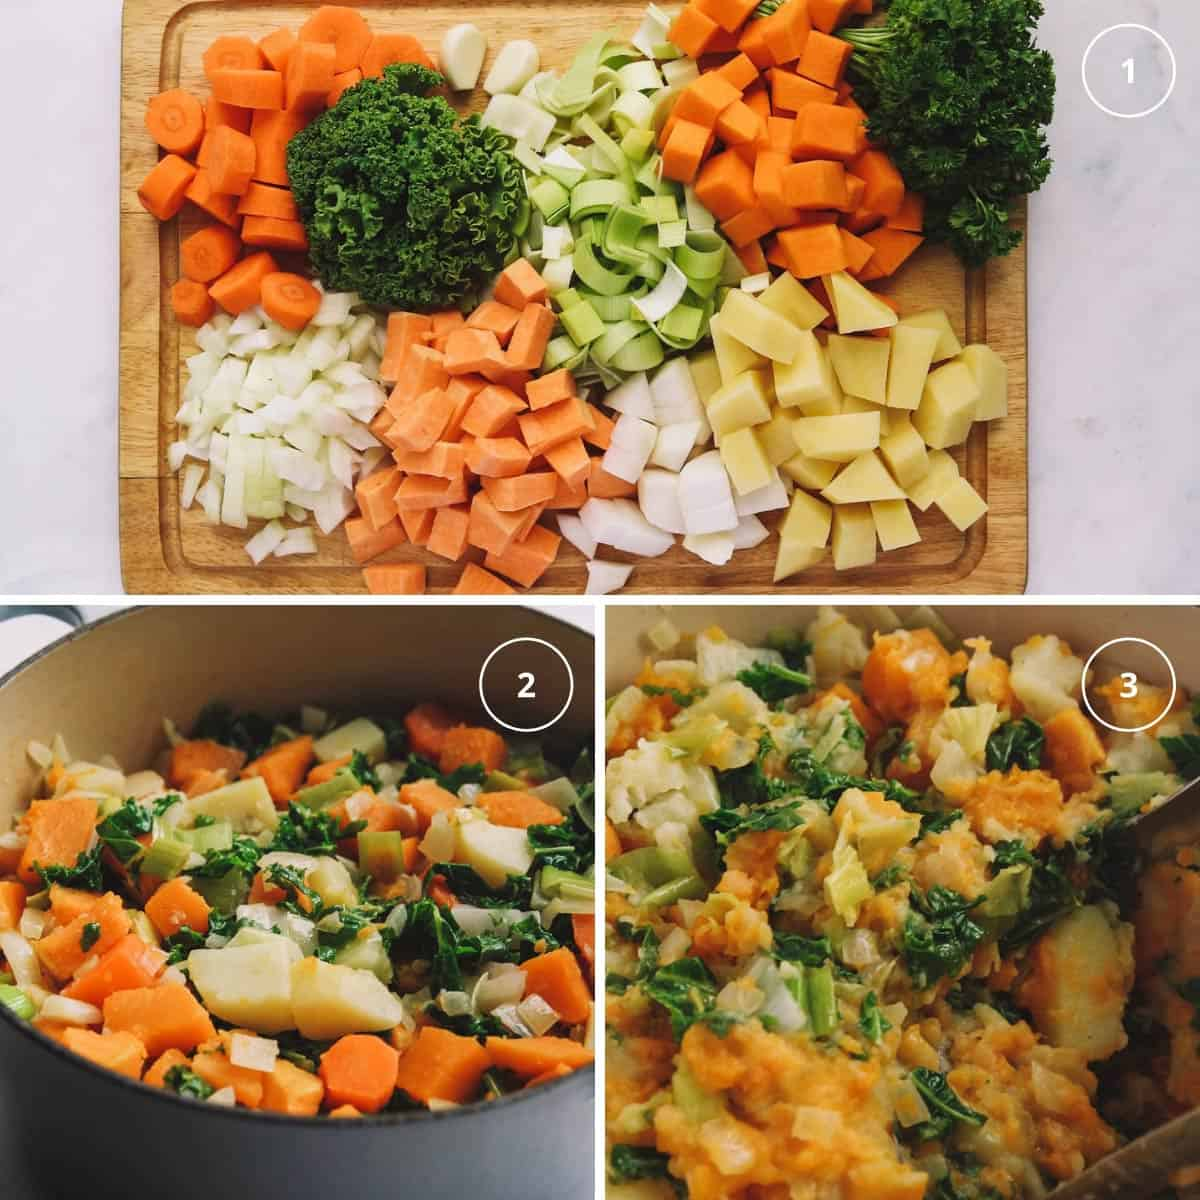 Three photos showing easy steps to making stamppot dish from the Netherlands.